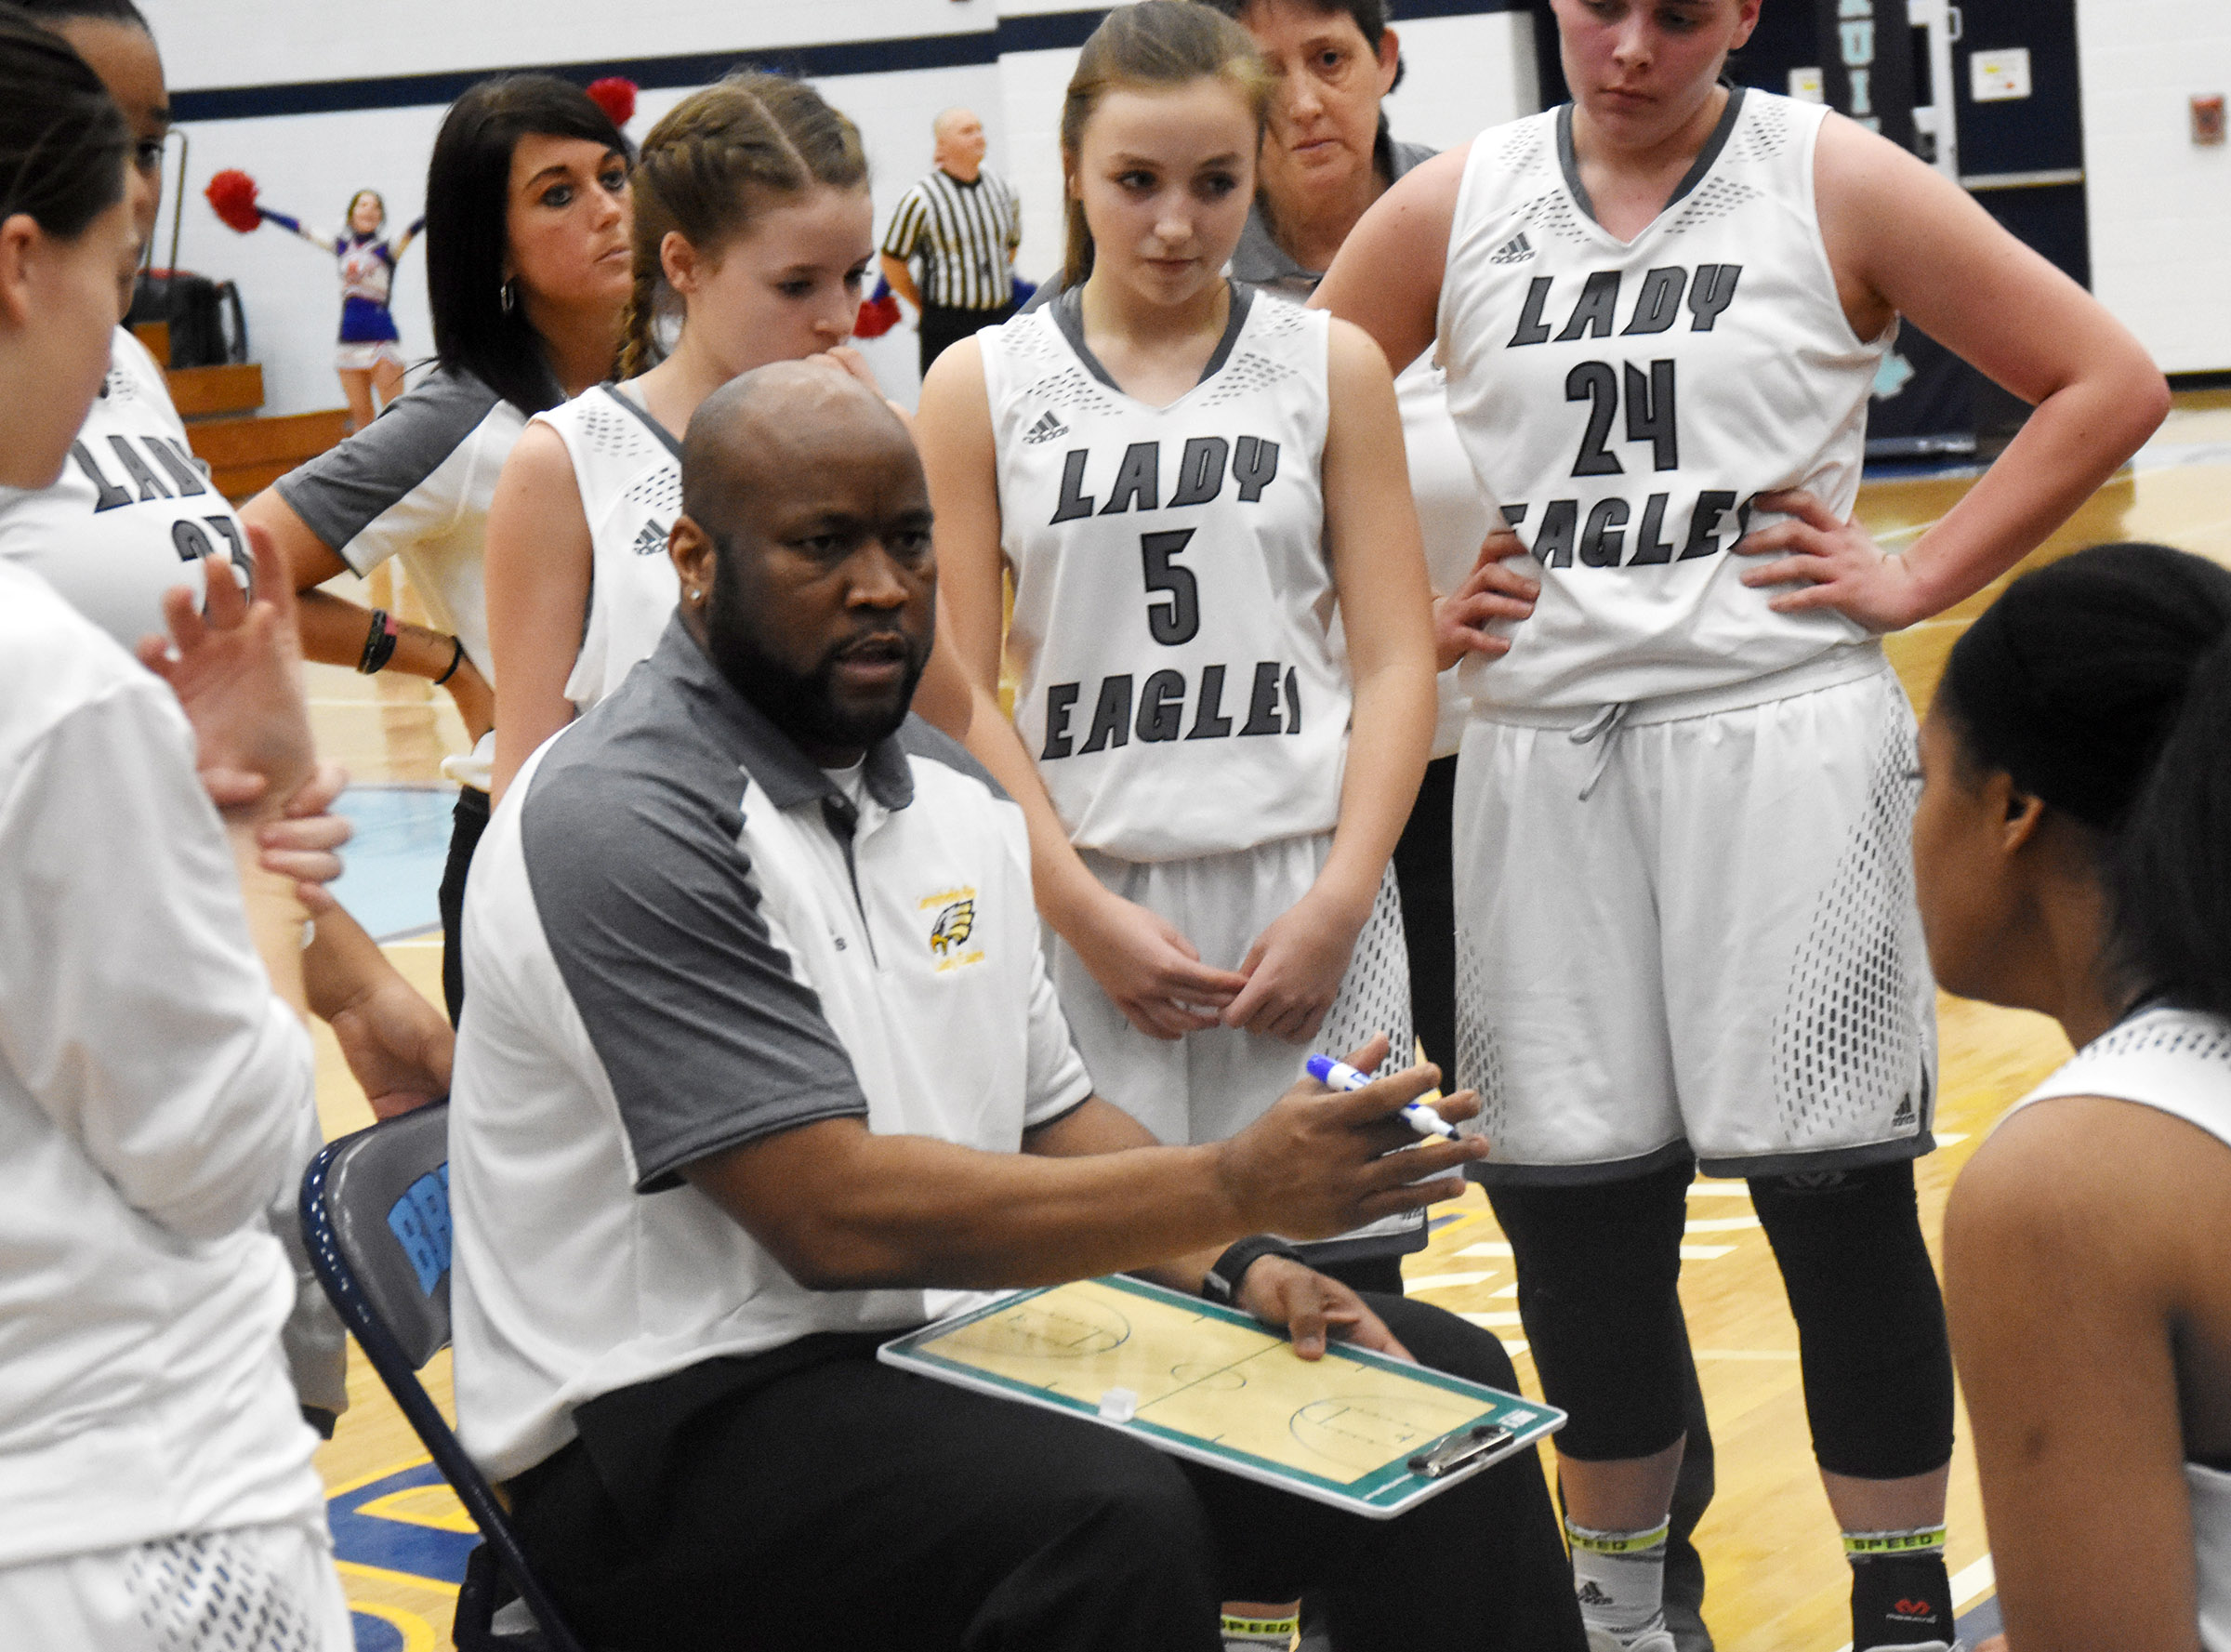 CHS girls' basketball head coach Anthony Epps talks to his players.